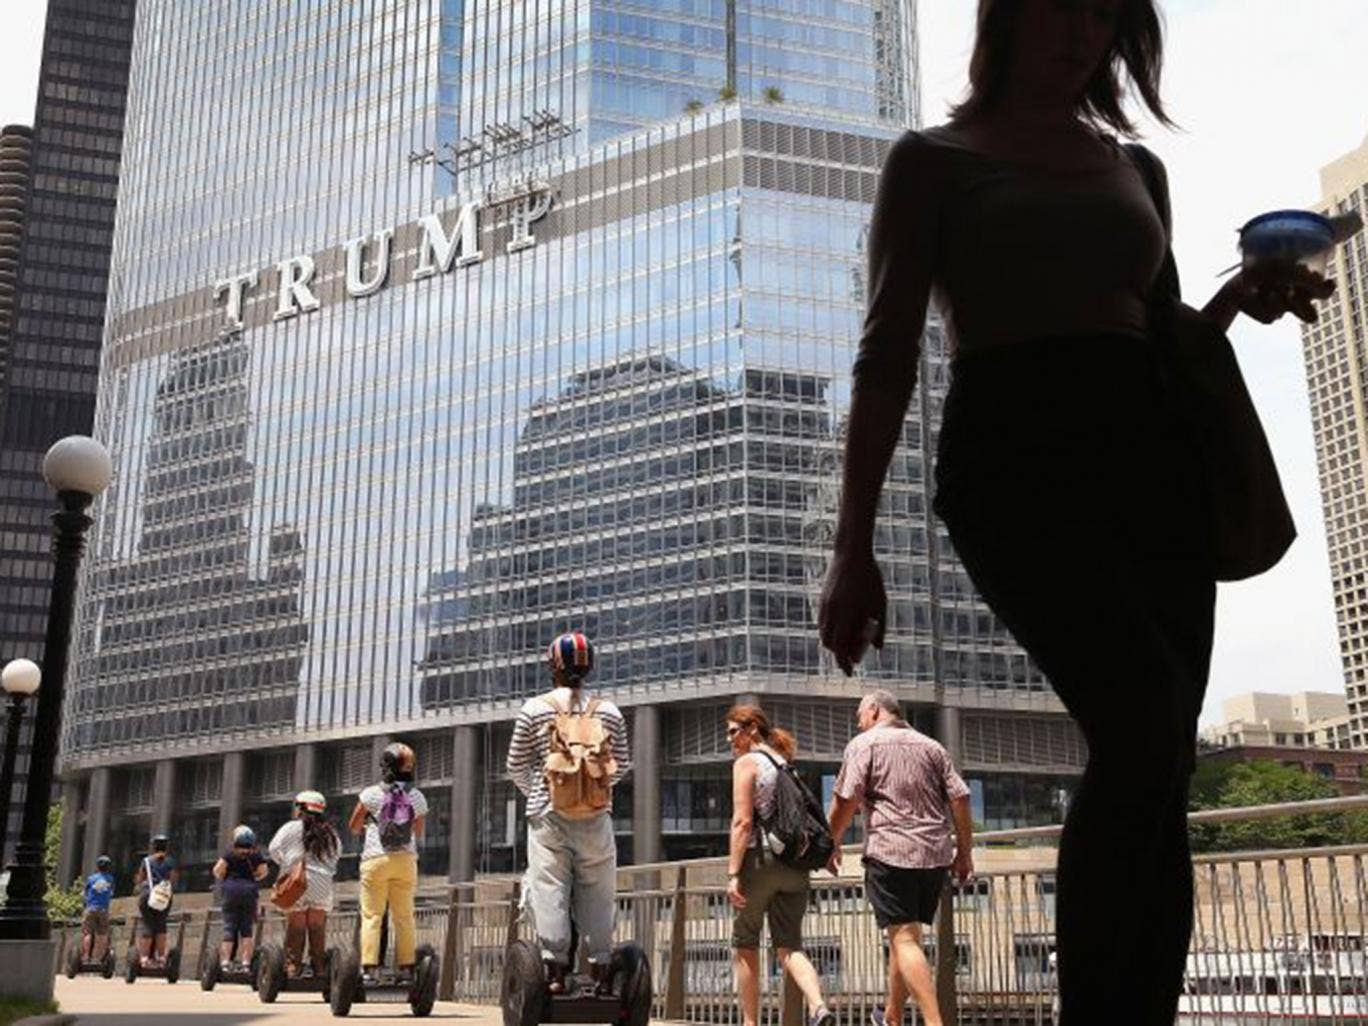 The Trump International Hotel and Tower in Chicago sports the businessman's new 20ft-high sign